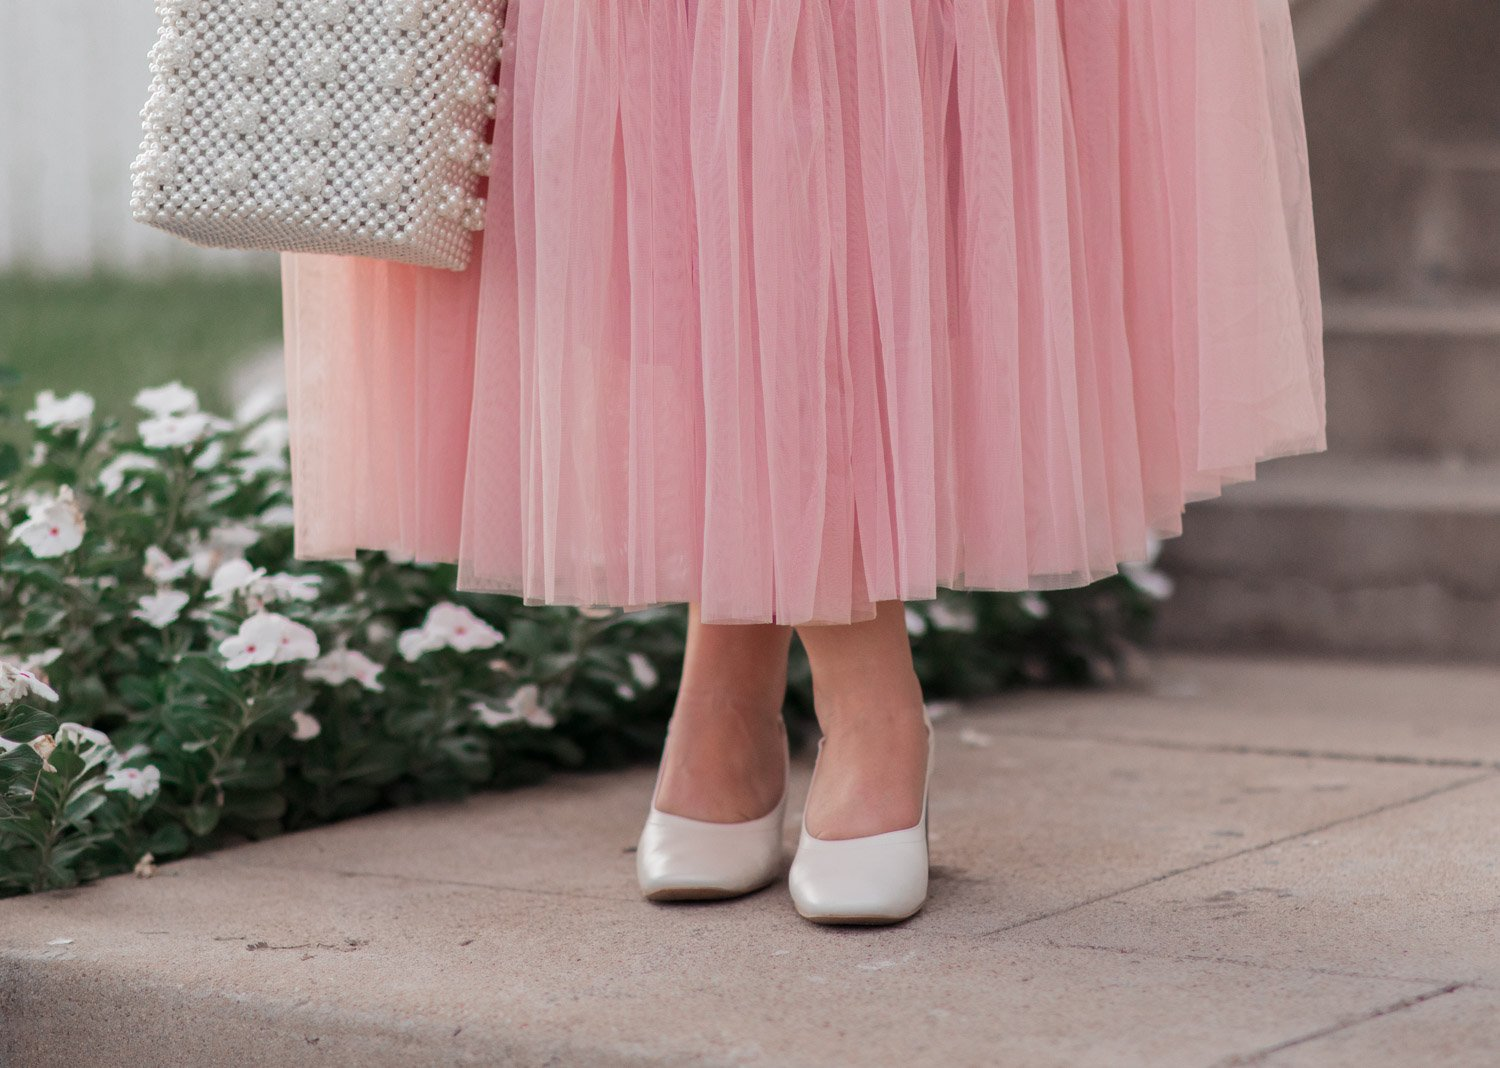 Elizabeth Hugen of Lizzie in Lace styles a pink tulle skirt and Everlane heels!